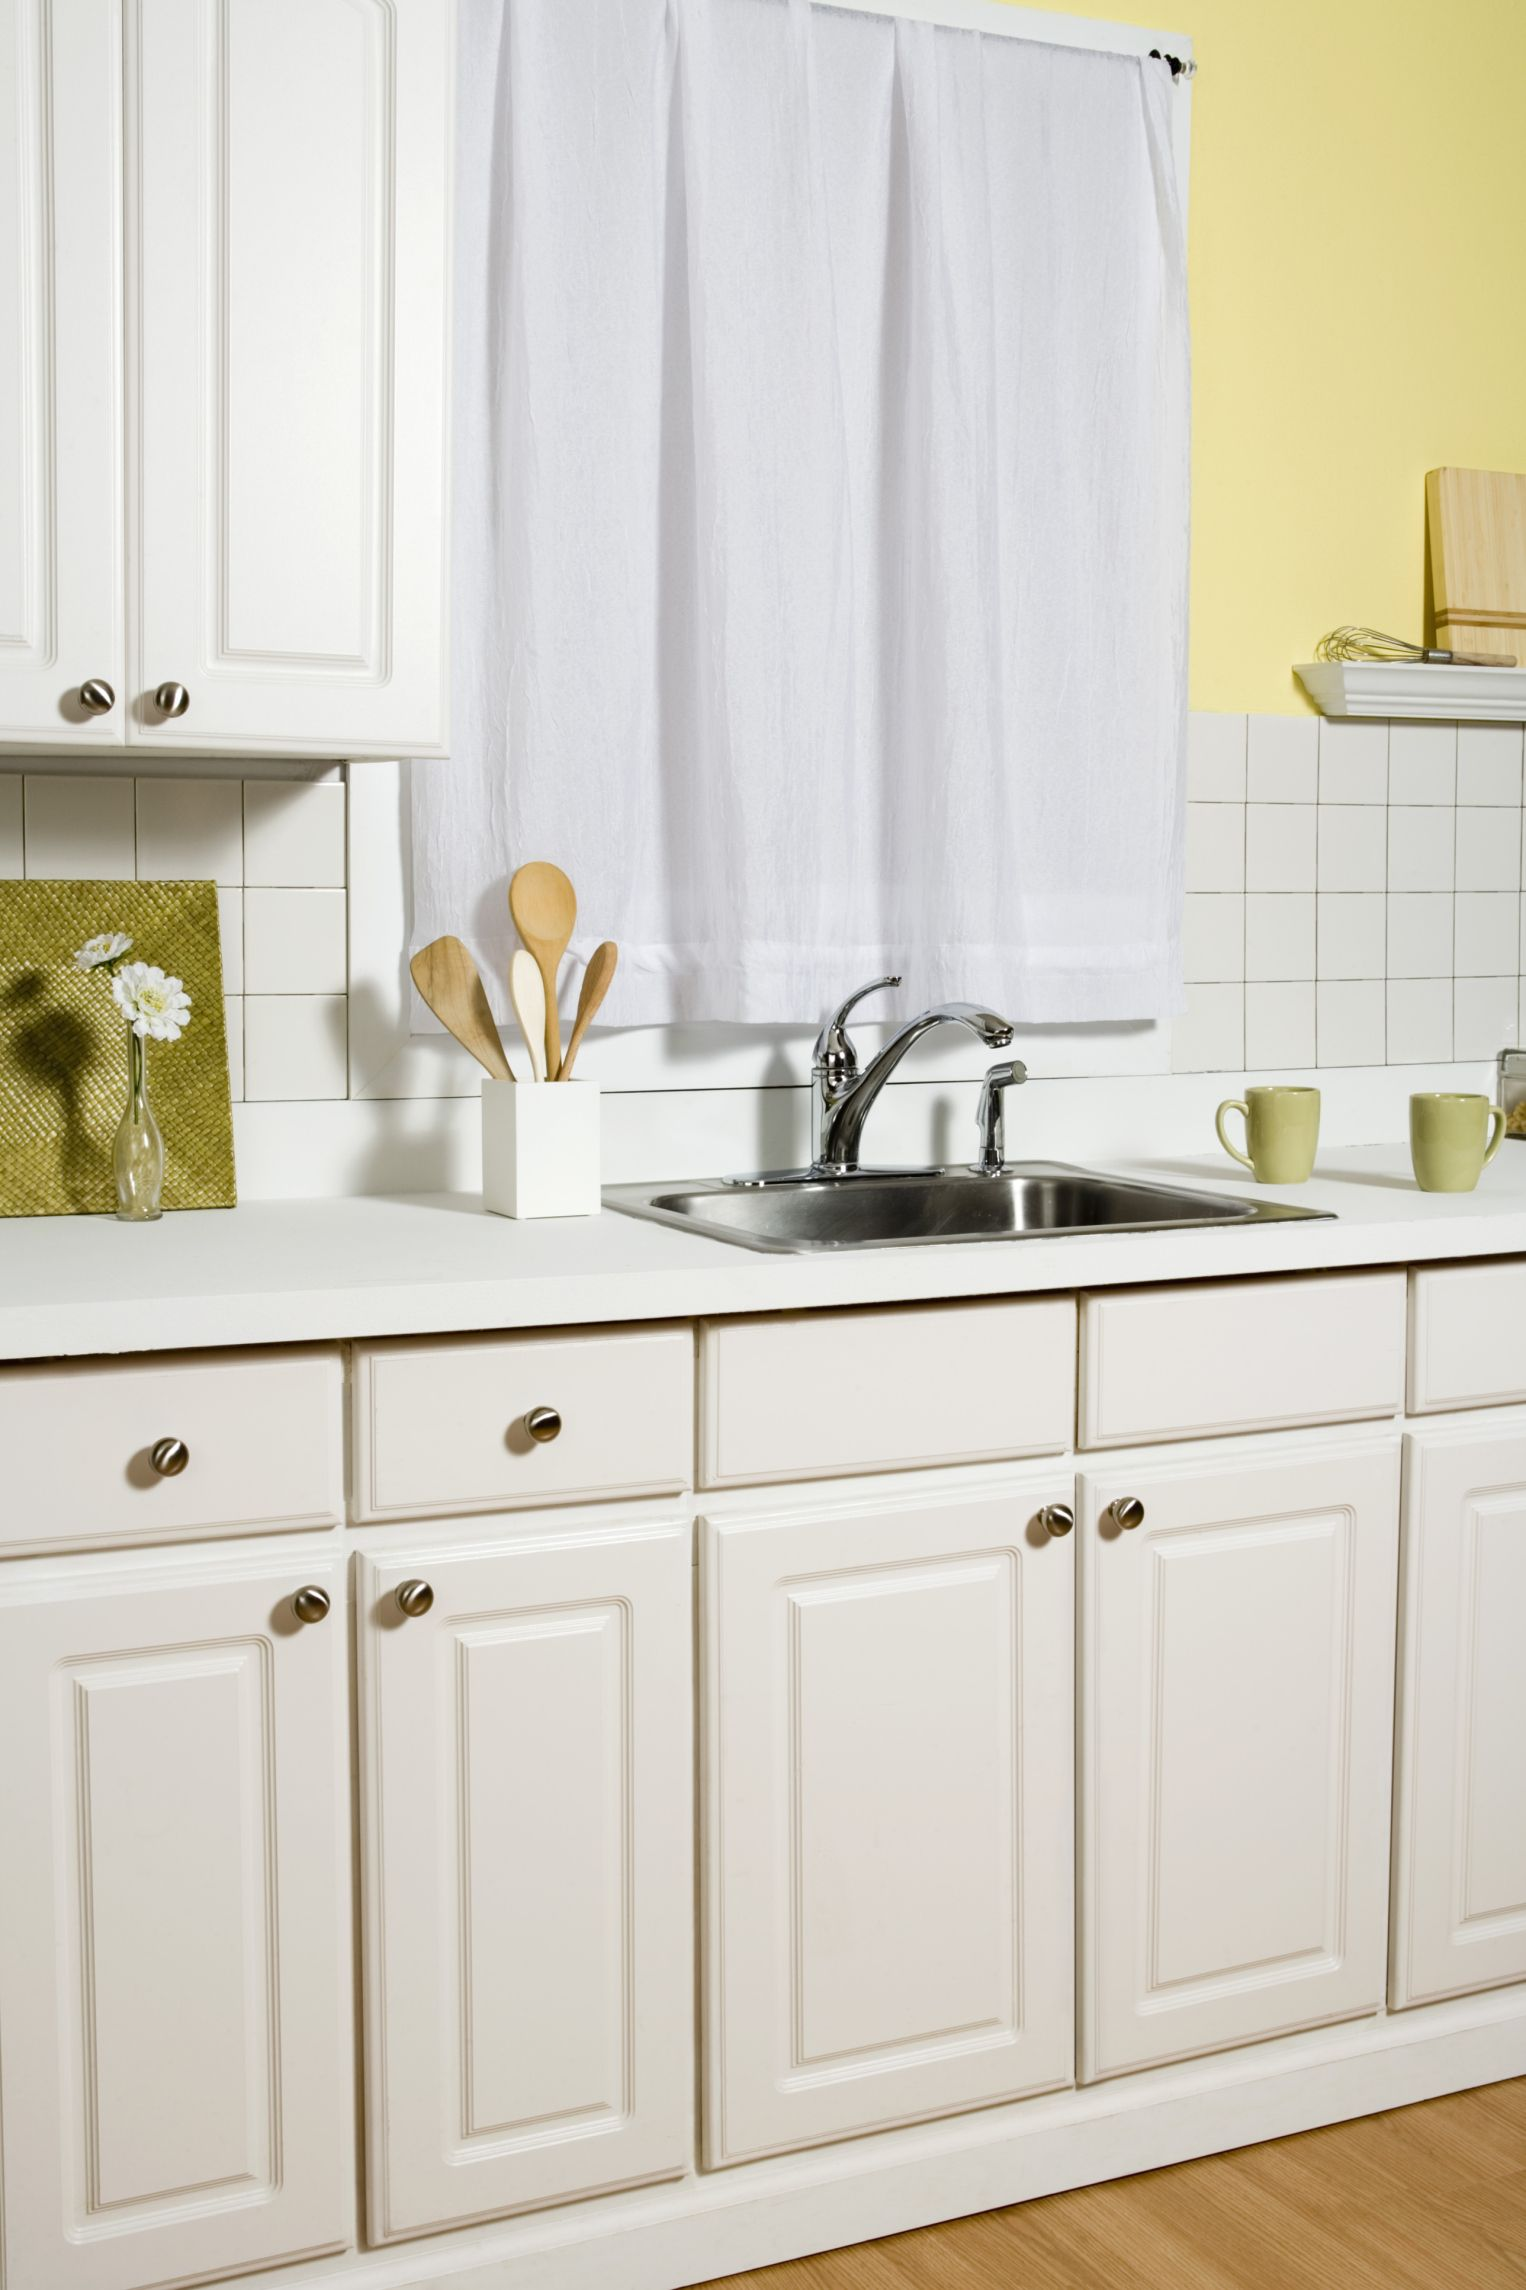 Can You Pull Laminate Off Cabinets Paint The Pressed Wood Hunker Clean Kitchen Cabinets New Kitchen Cabinets Kitchen Cabinets